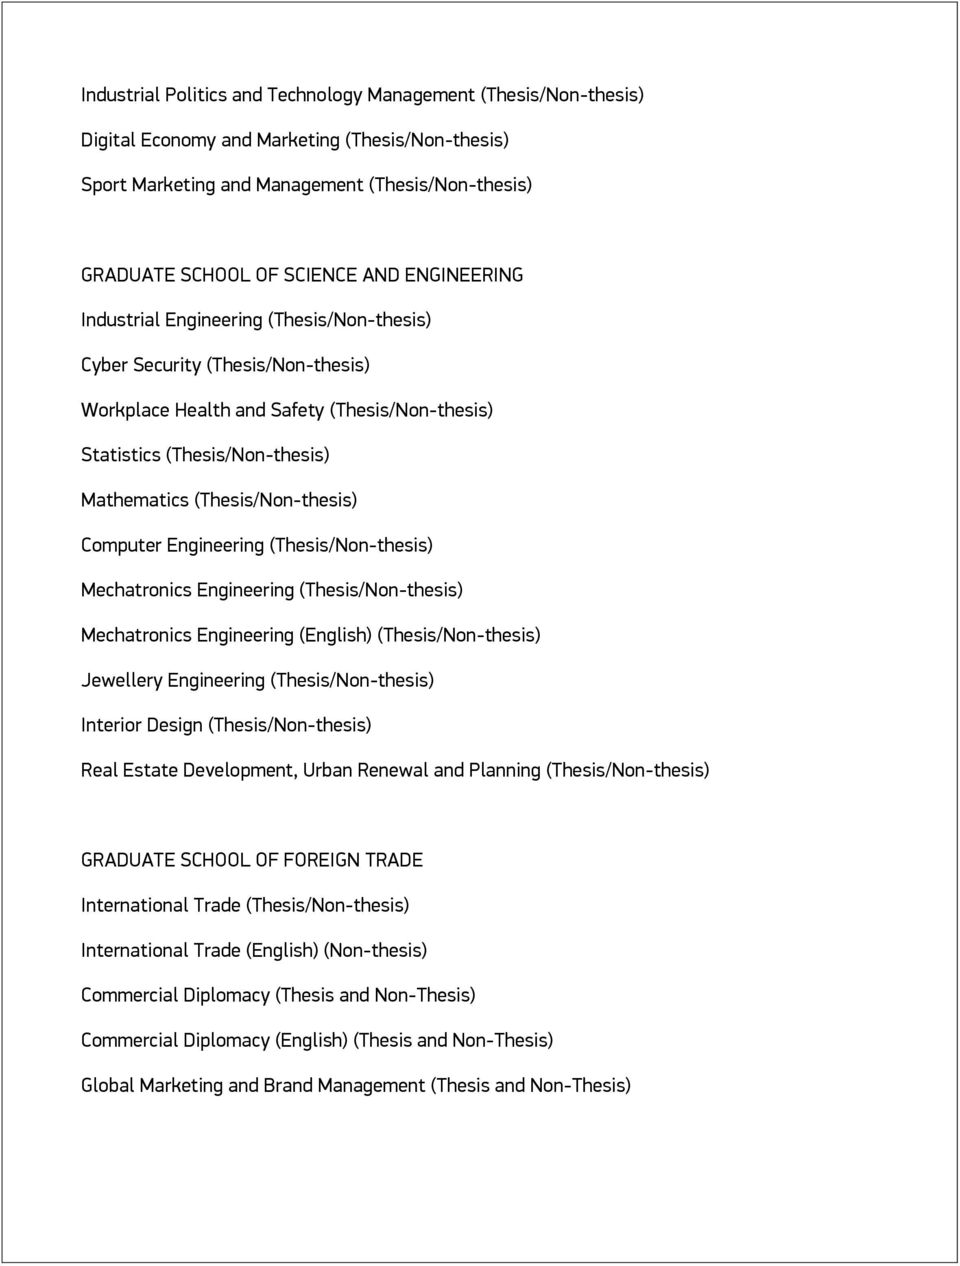 (Thesis/Non-thesis) Computer Engineering (Thesis/Non-thesis) Mechatronics Engineering (Thesis/Non-thesis) Mechatronics Engineering (English) (Thesis/Non-thesis) Jewellery Engineering